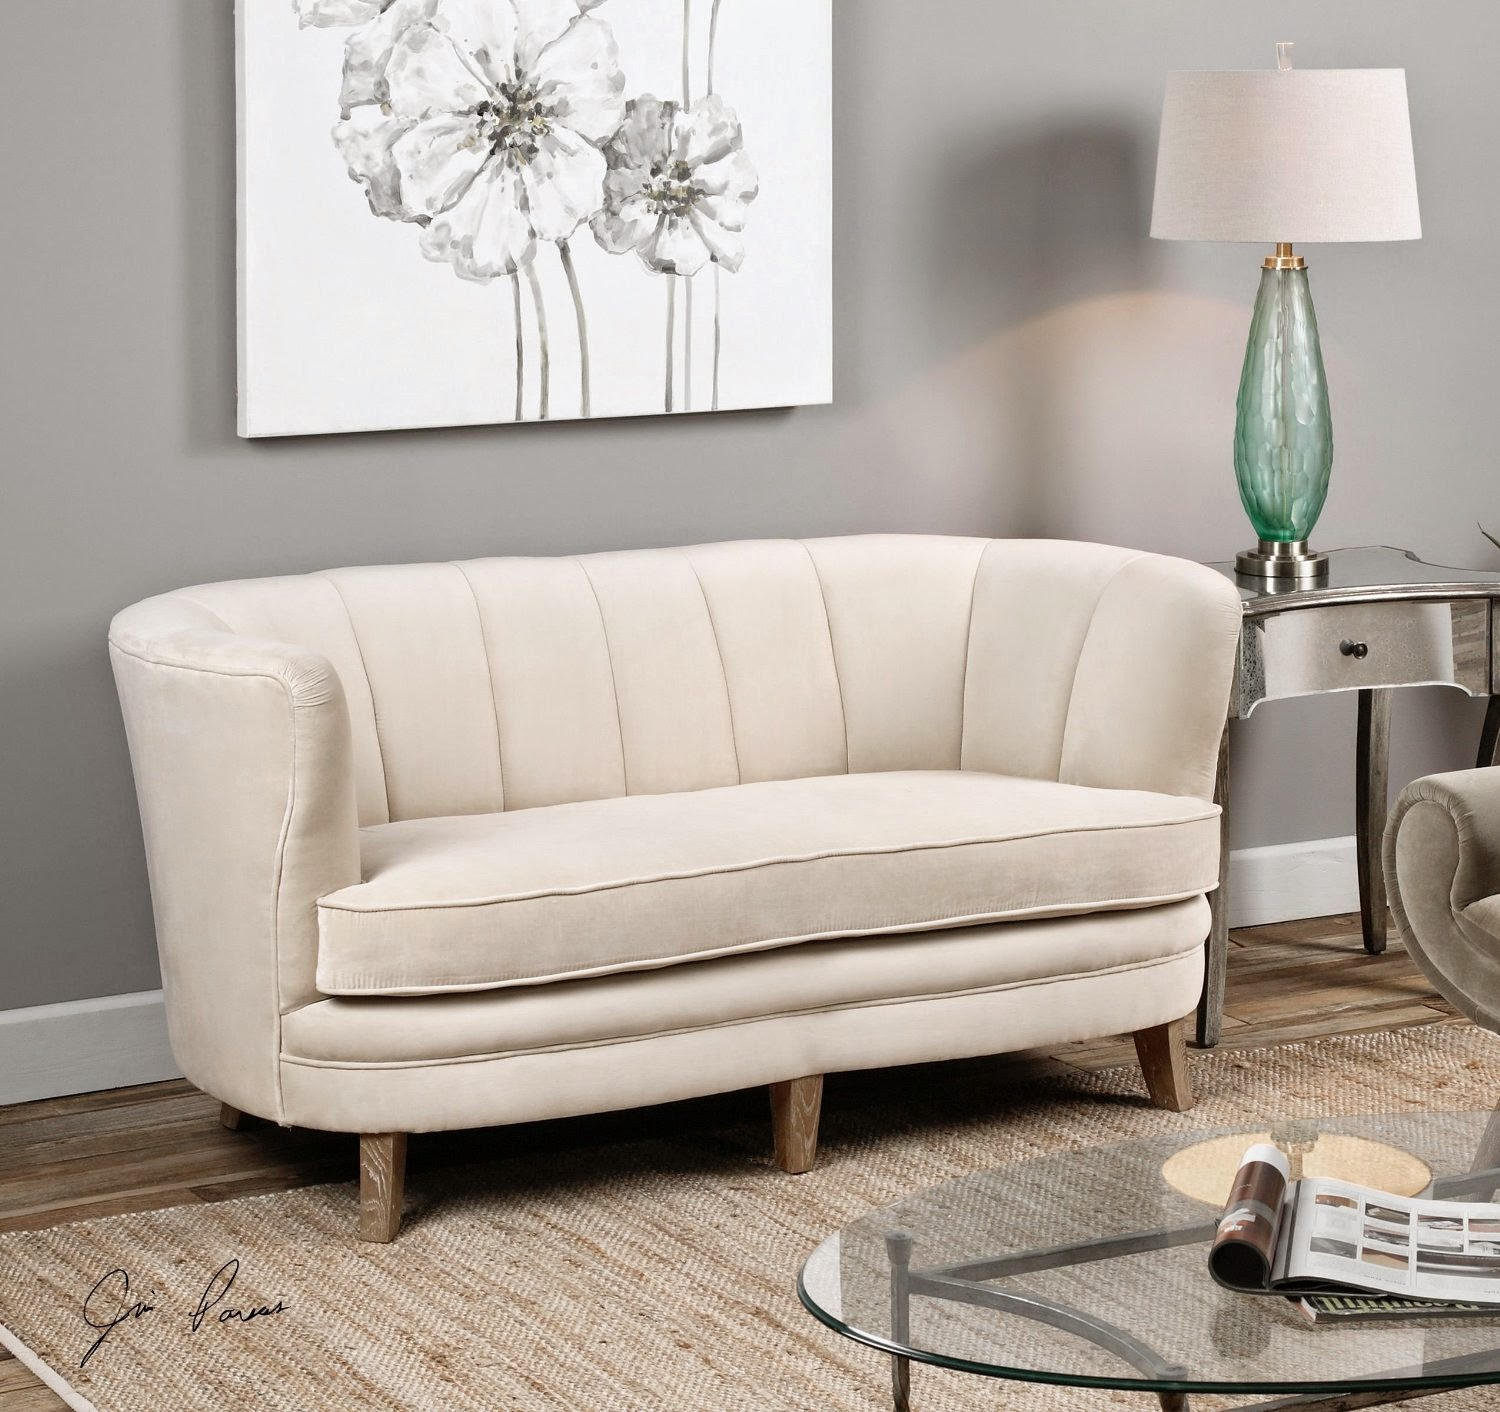 Modern Twine Curved Arm Sofa Sleepers With Storage Sofas Reviews Back